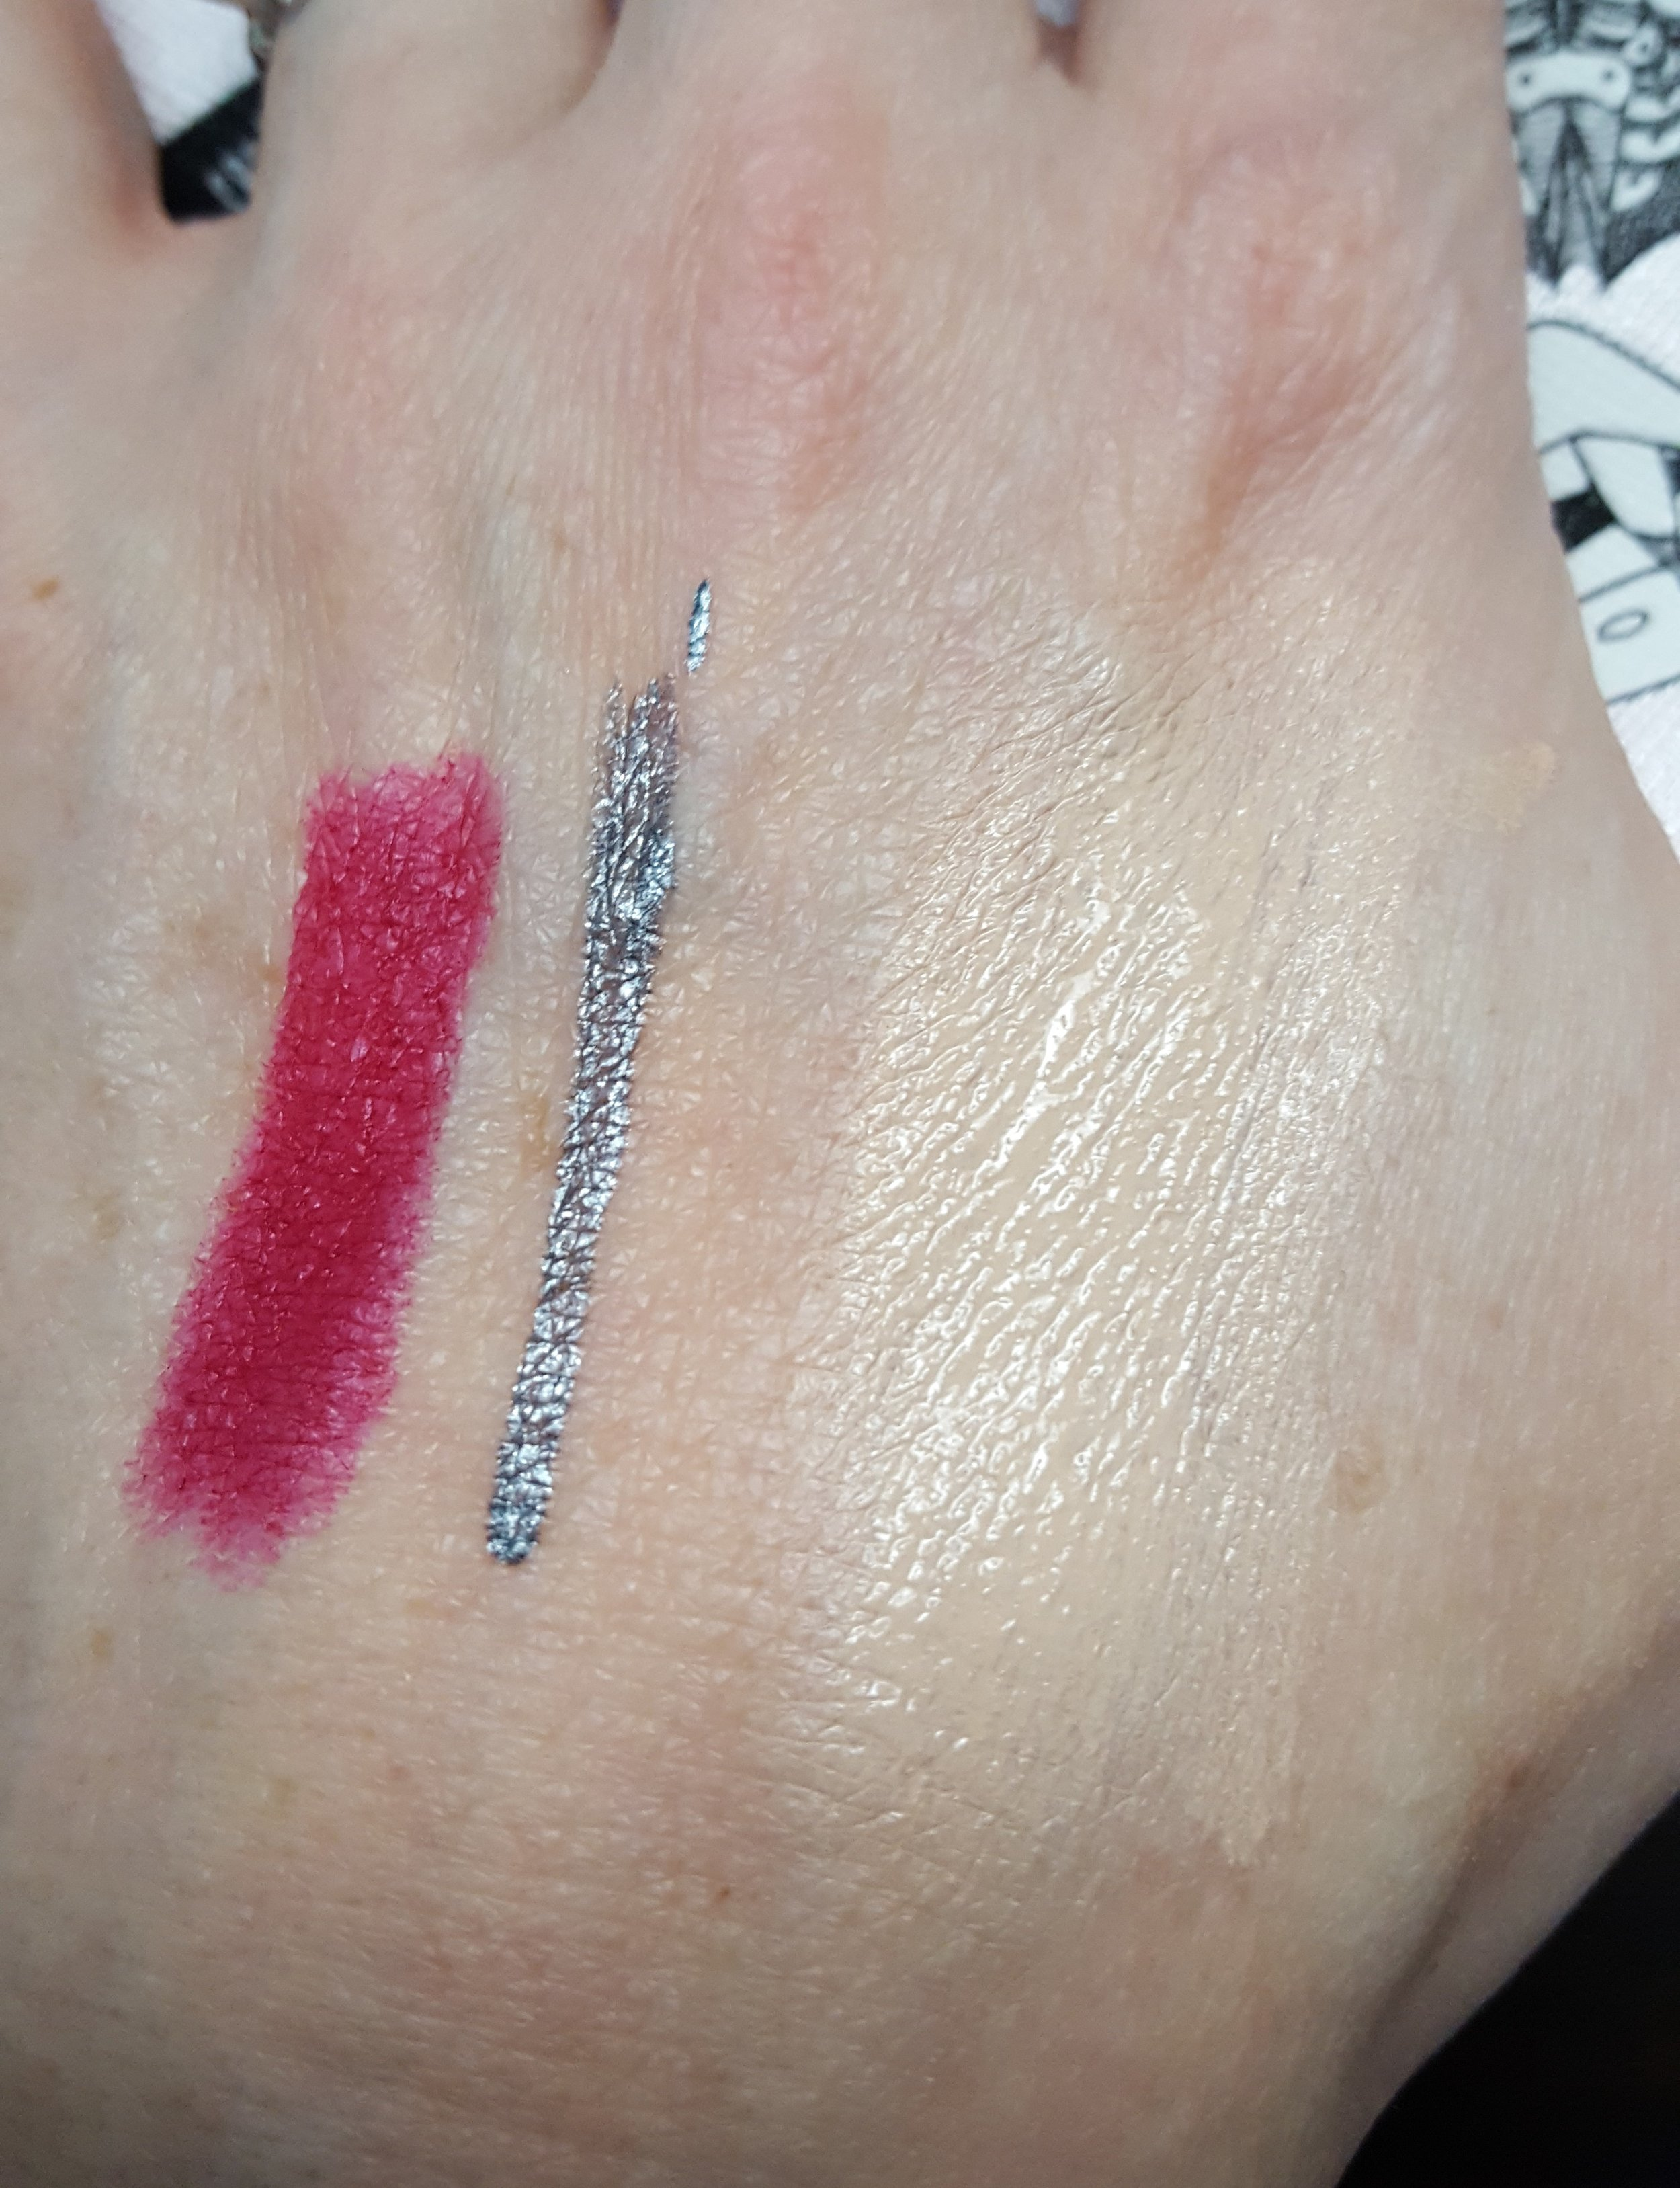 Left to Right: Tre'Stique lip crayon; NYX Vivid Brights eyeliner; Makeup Forever foundation